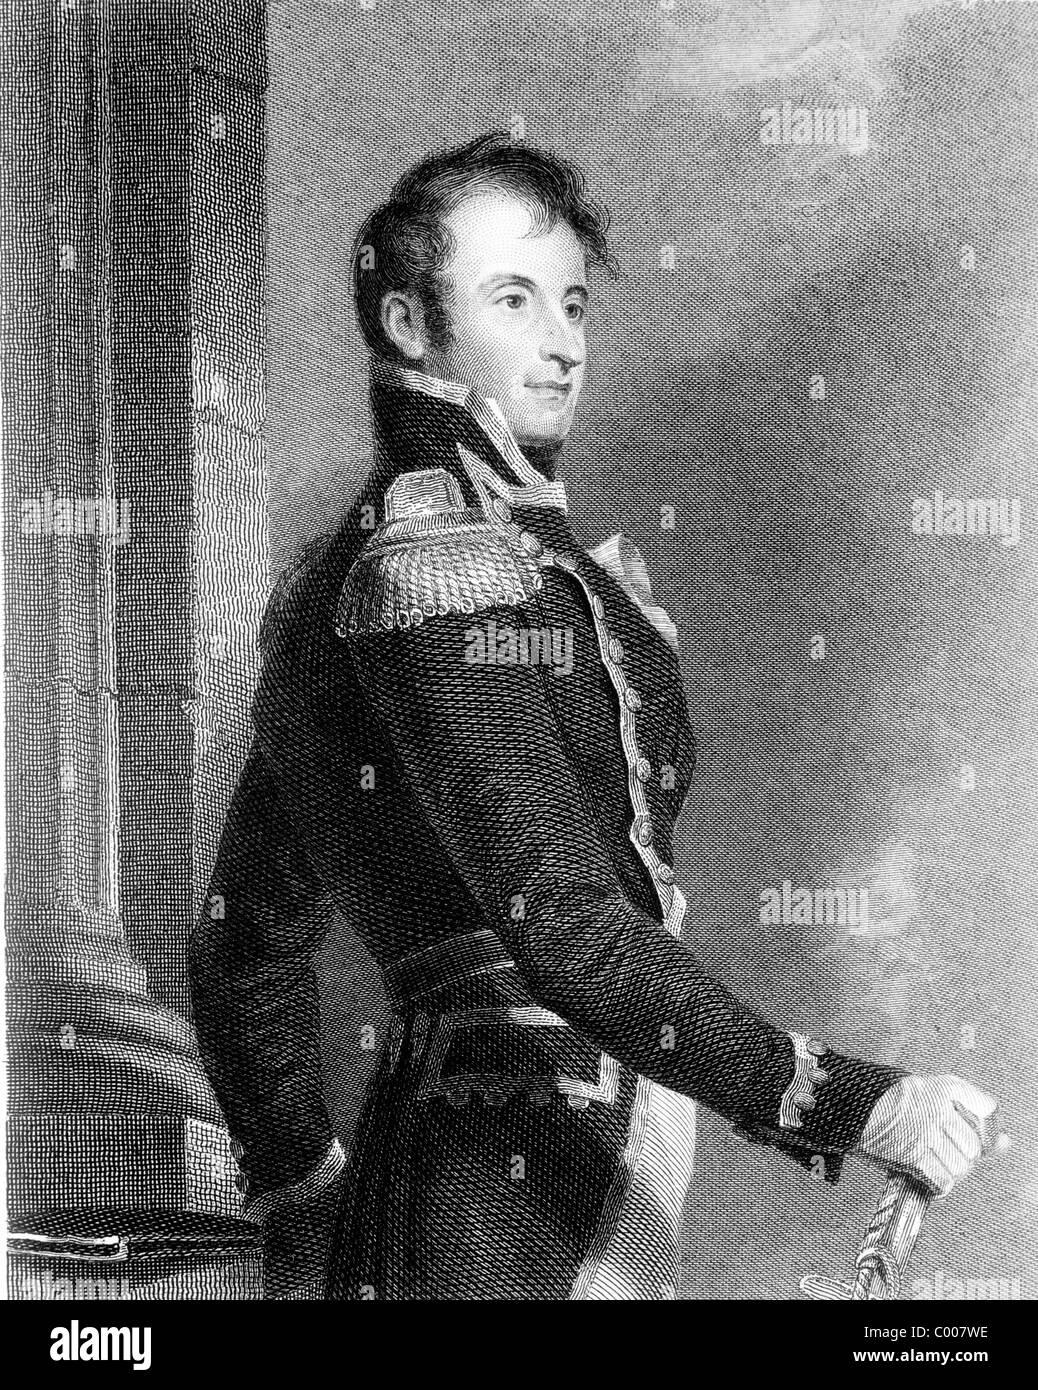 Stephen Decatur, Commodore Stephen Decatur Jr. American naval officer - Stock Image